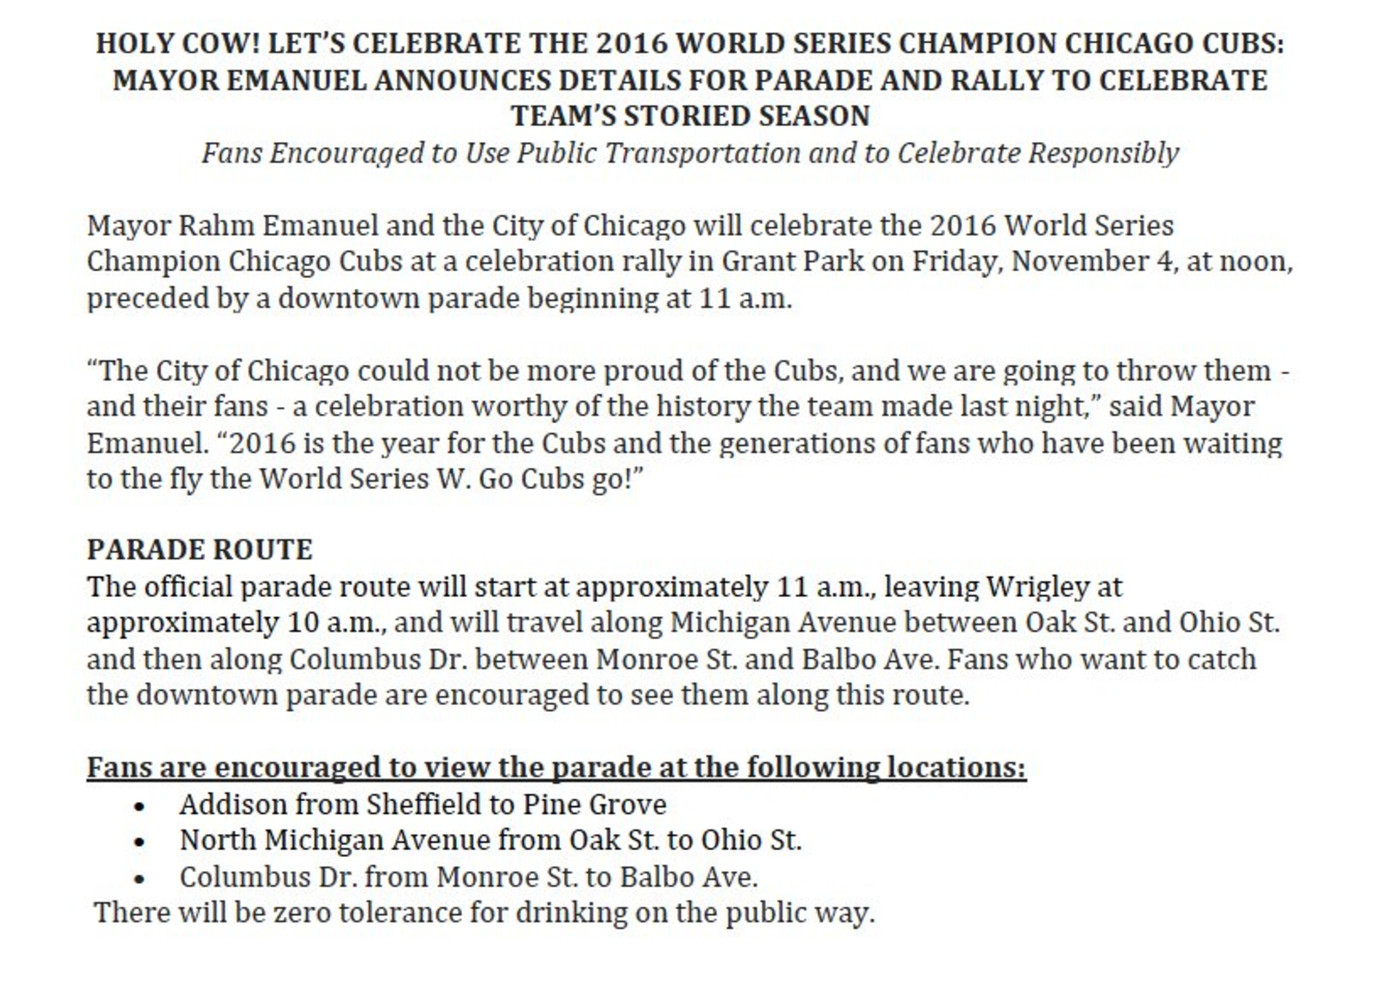 Friday's Cubs World Series Parade: Start time, route, and